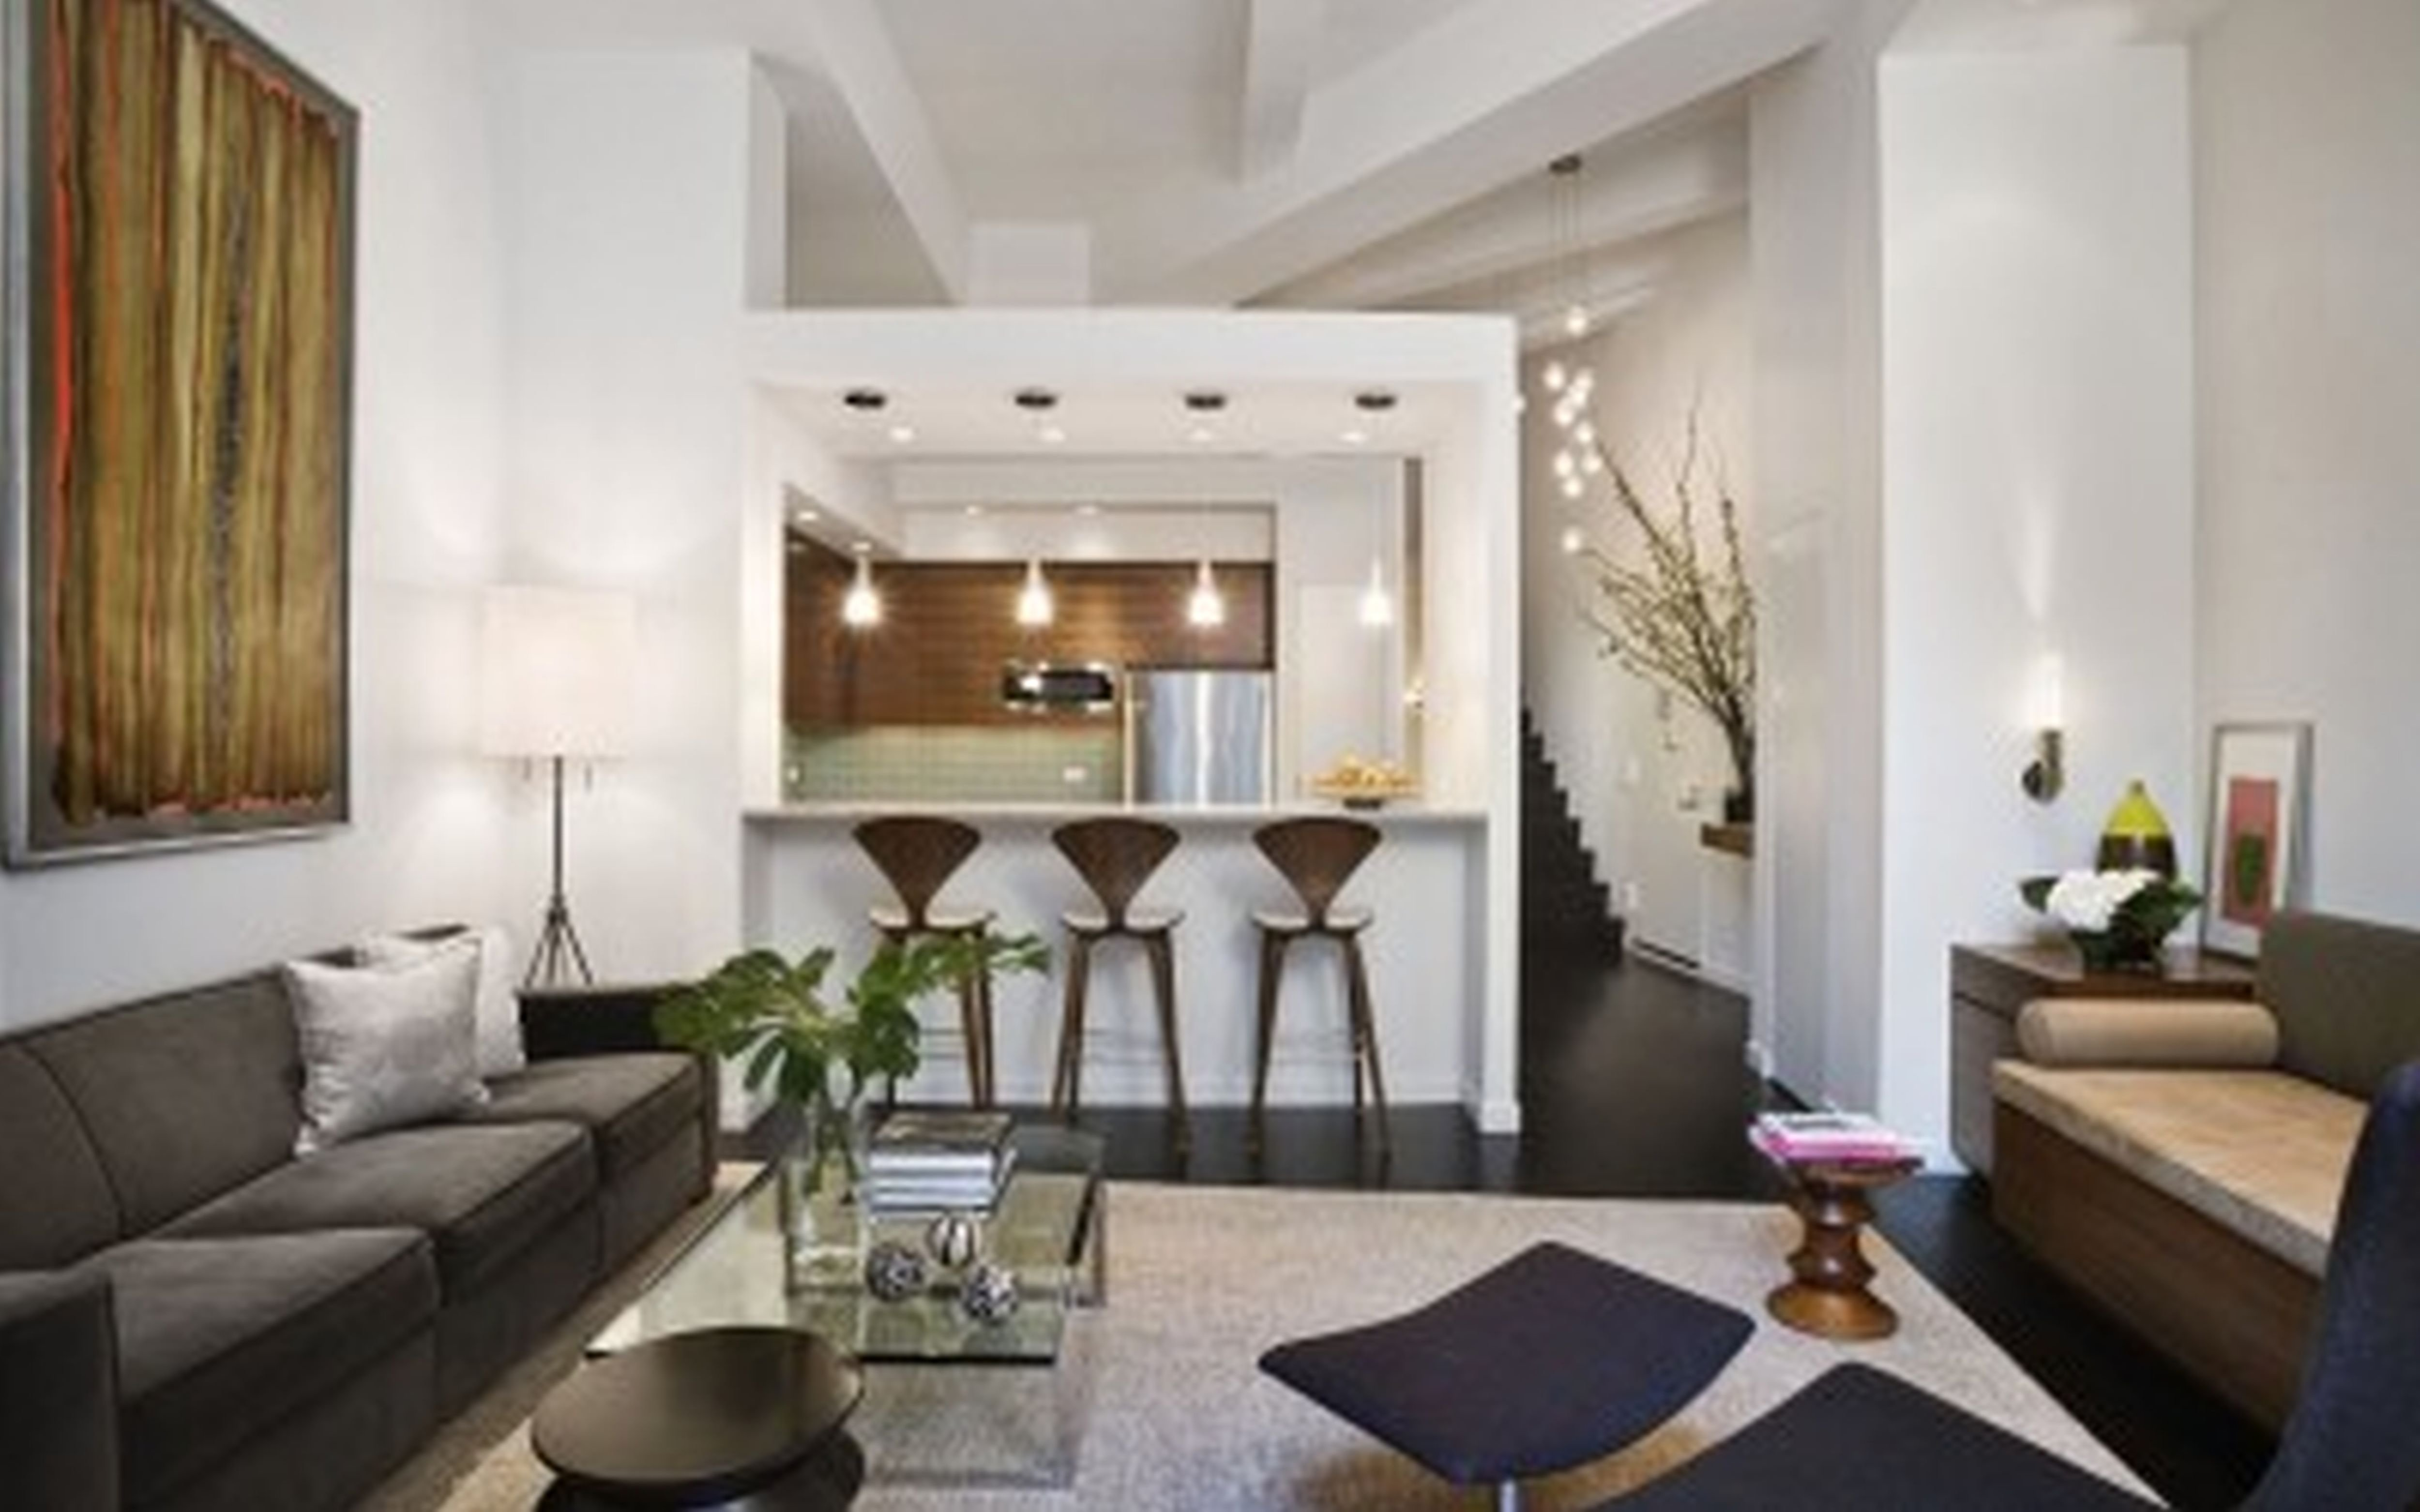 10 Pretty Decorating Ideas For Studio Apartments amazing of trendy apartments living room wall decor ideas 4720 2020